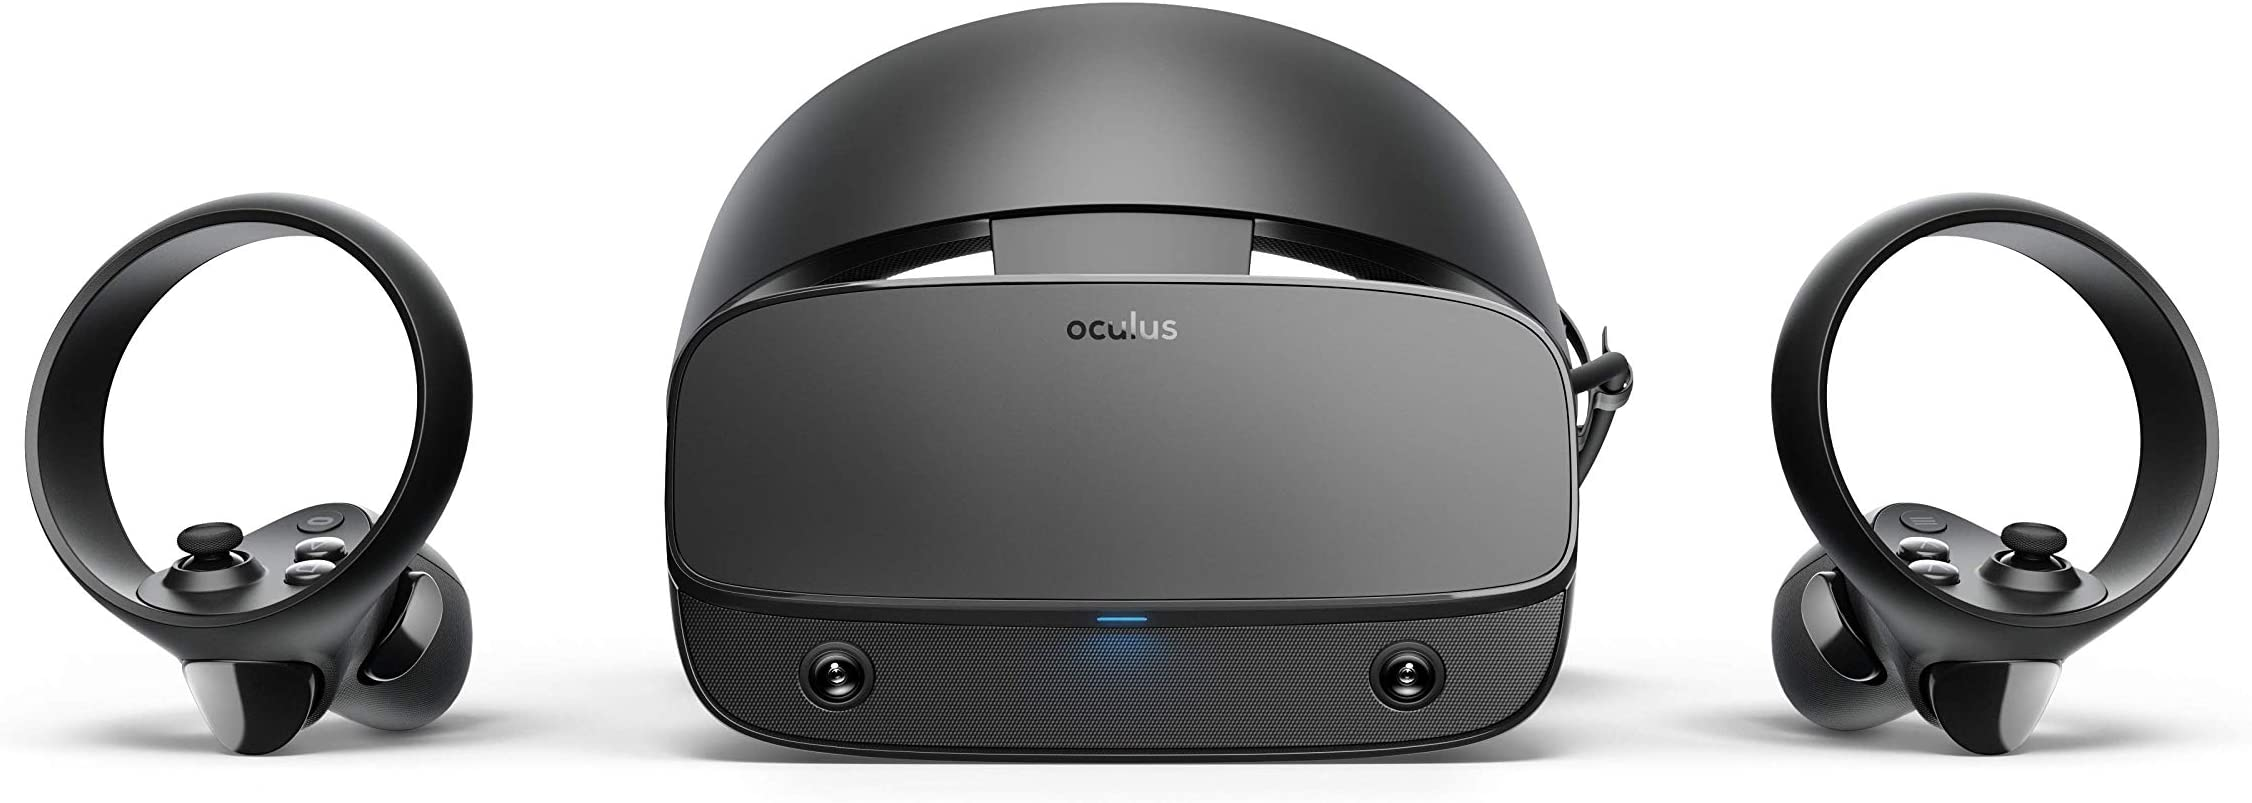 Amazon com: Oculus Rift S PC-Powered VR Gaming Headset